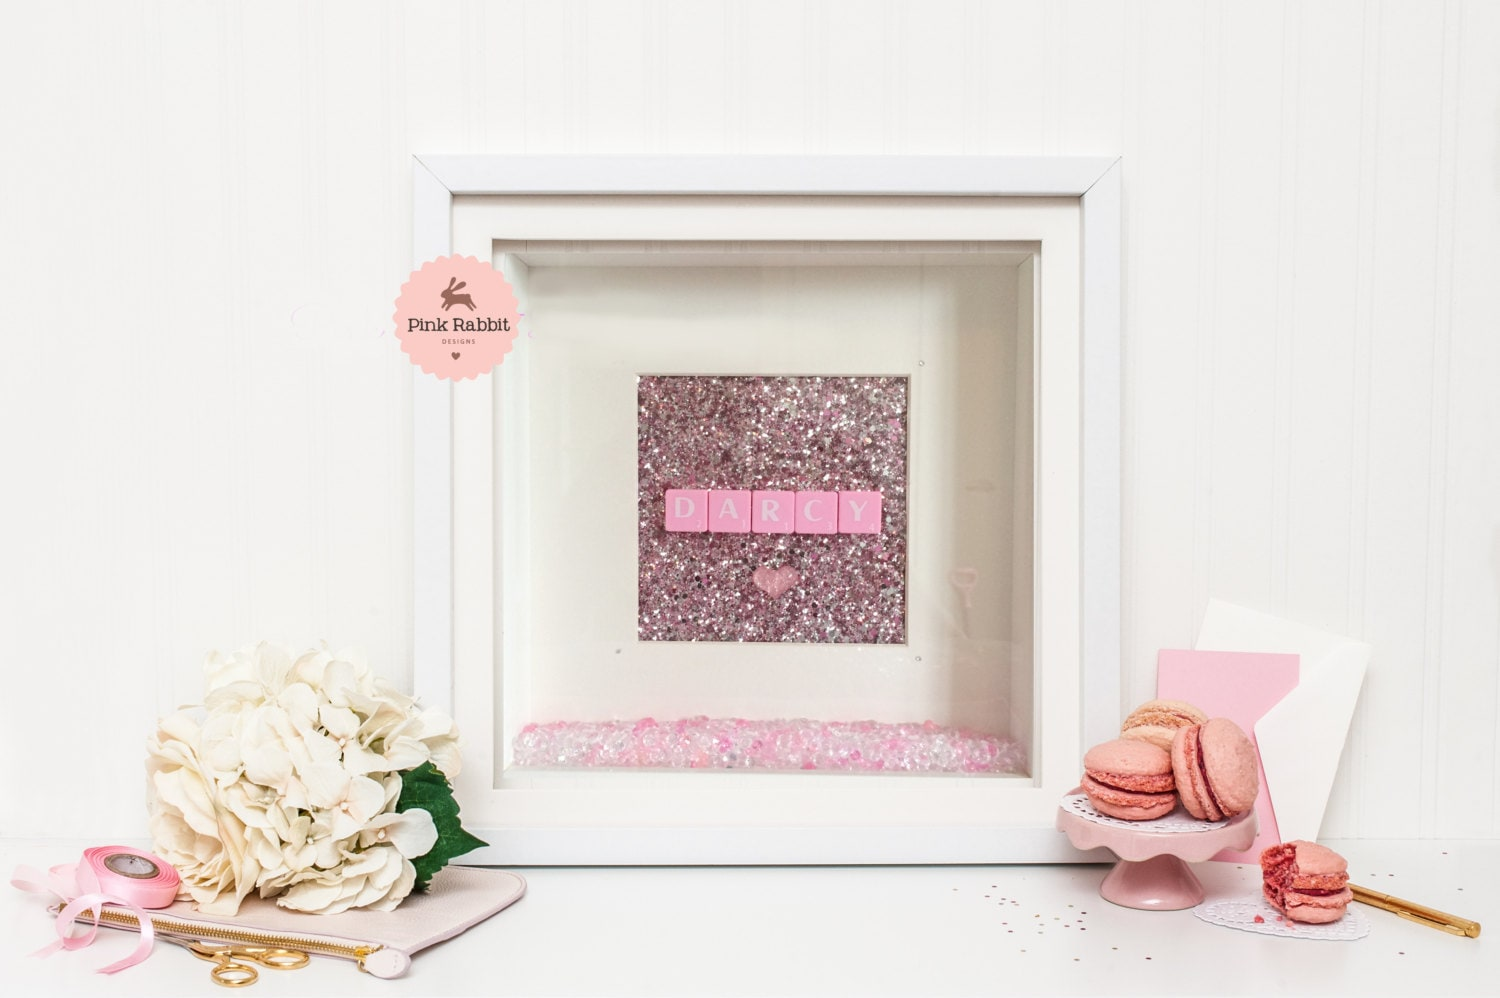 Wall Decor With Glitter : Framed scrabble wall art with glitter fabric swarovski